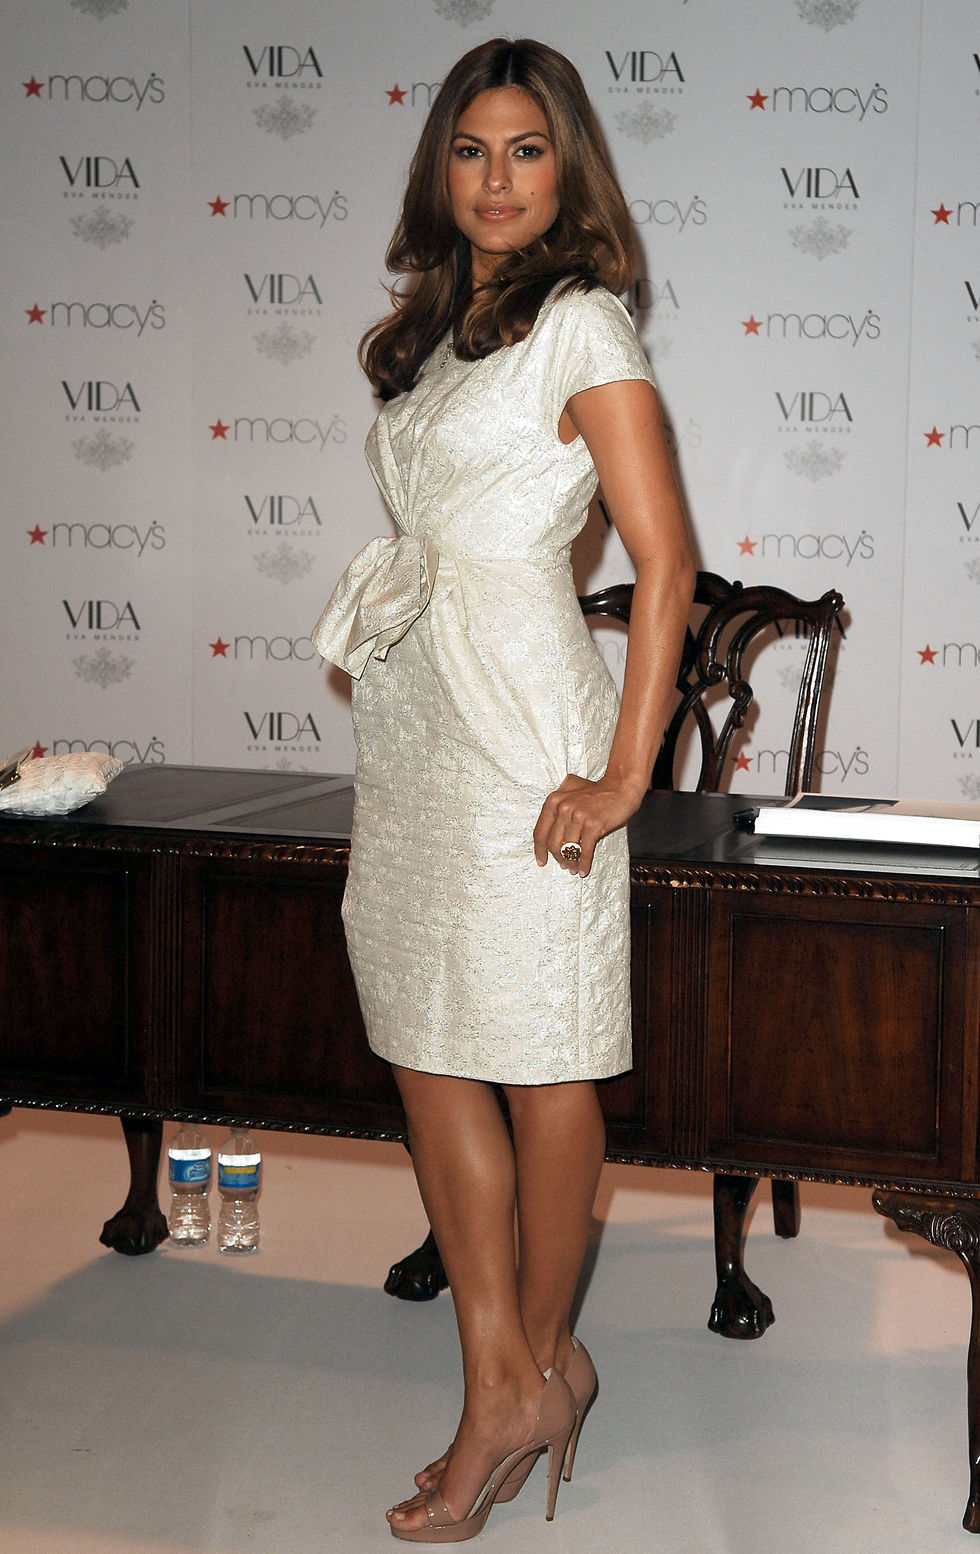 eva-mendes-home-decor-line-vida-launch-in-miami-01